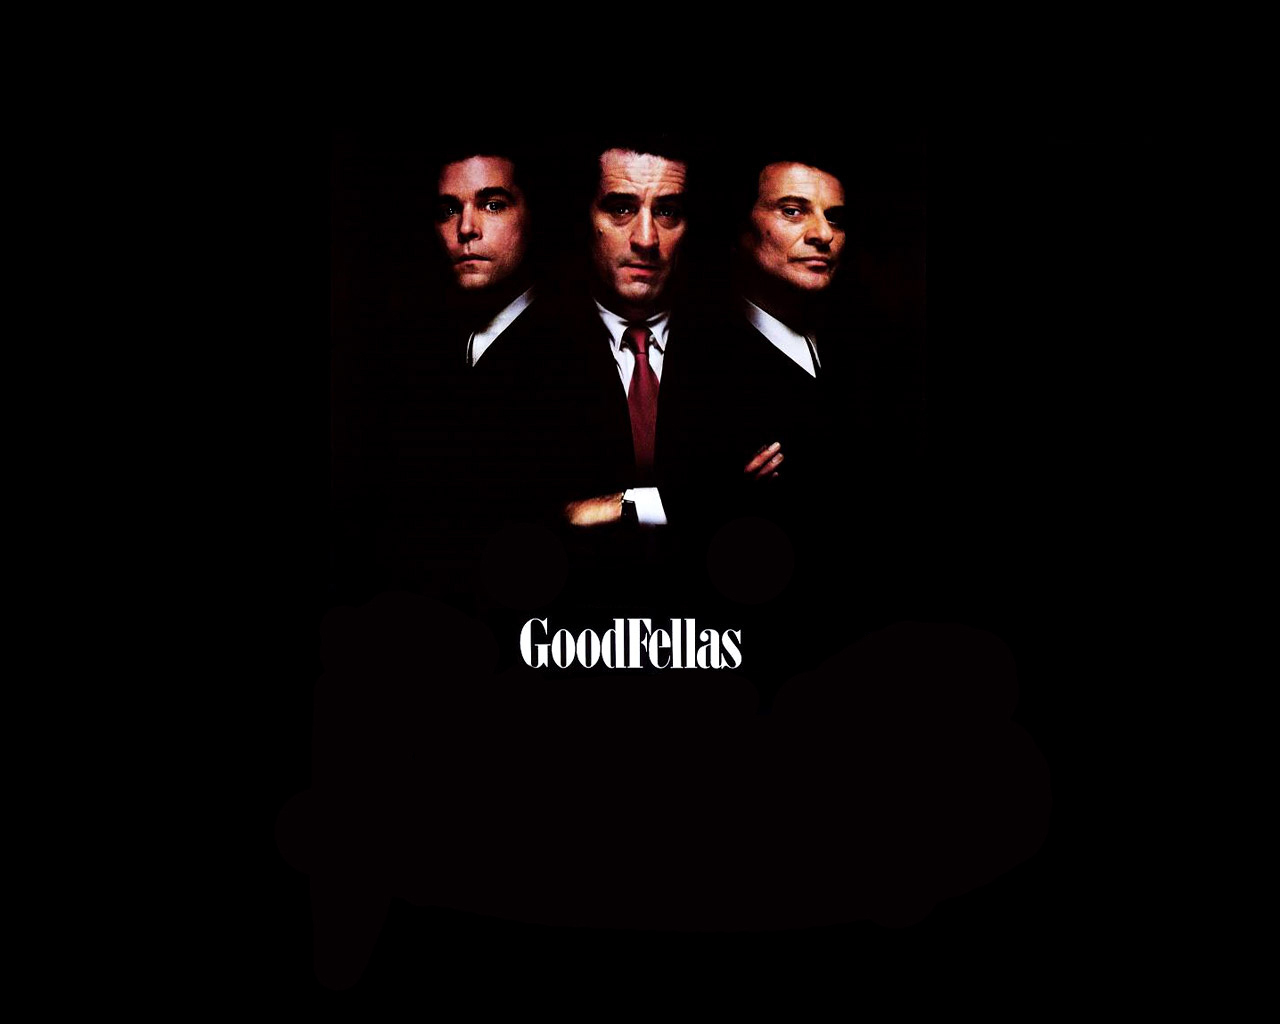 Goodfellas Robert De Niro HD Wallpaper